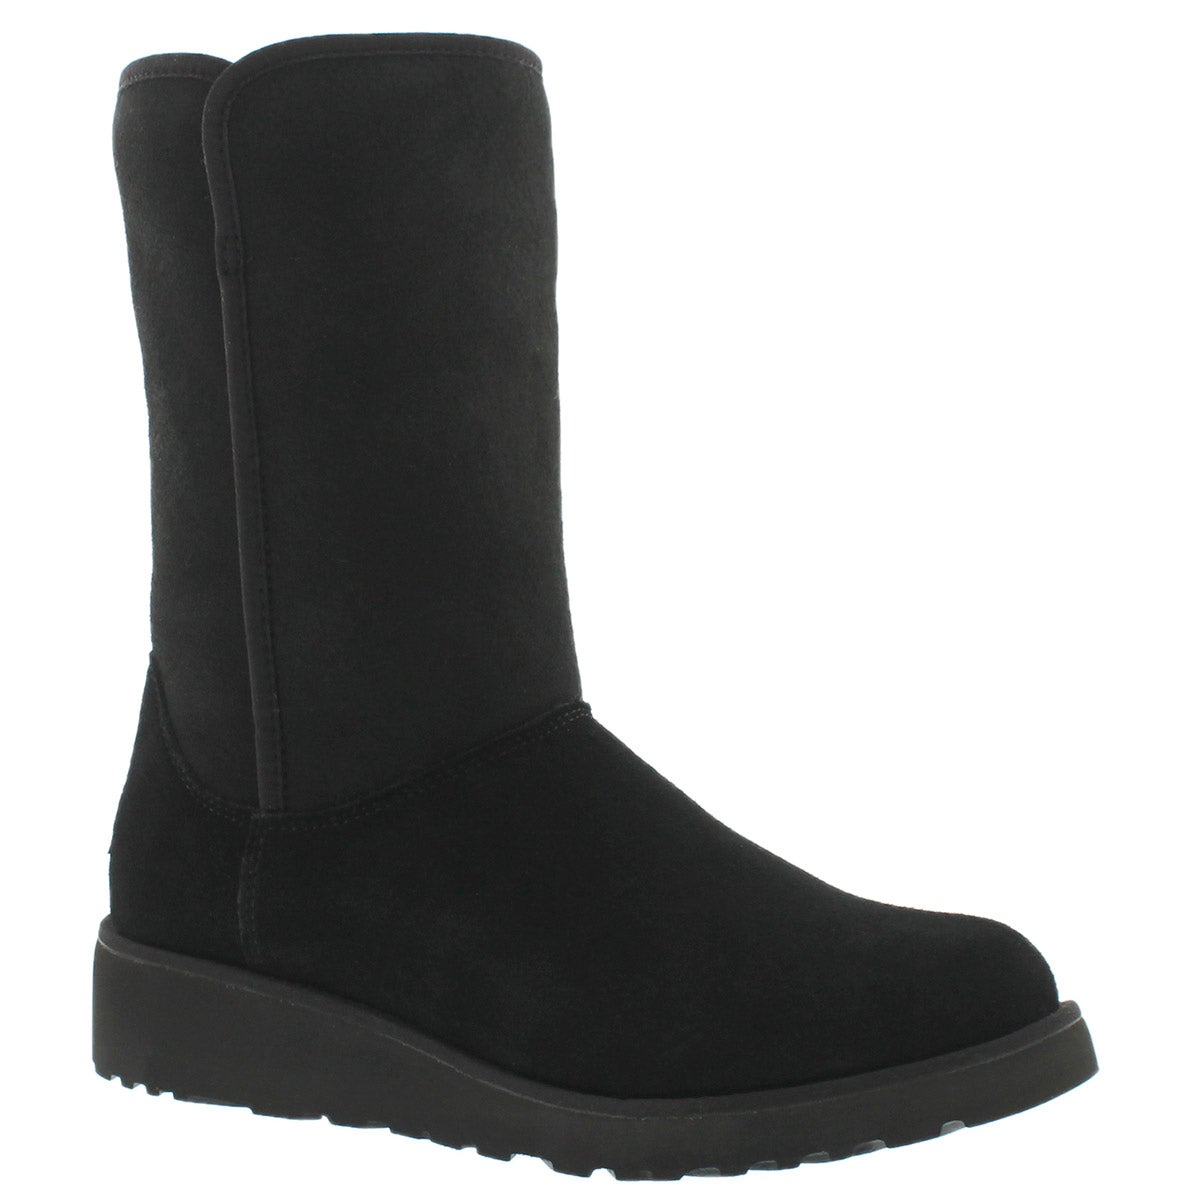 Women's AMIE black wedge tall sheepskin boots